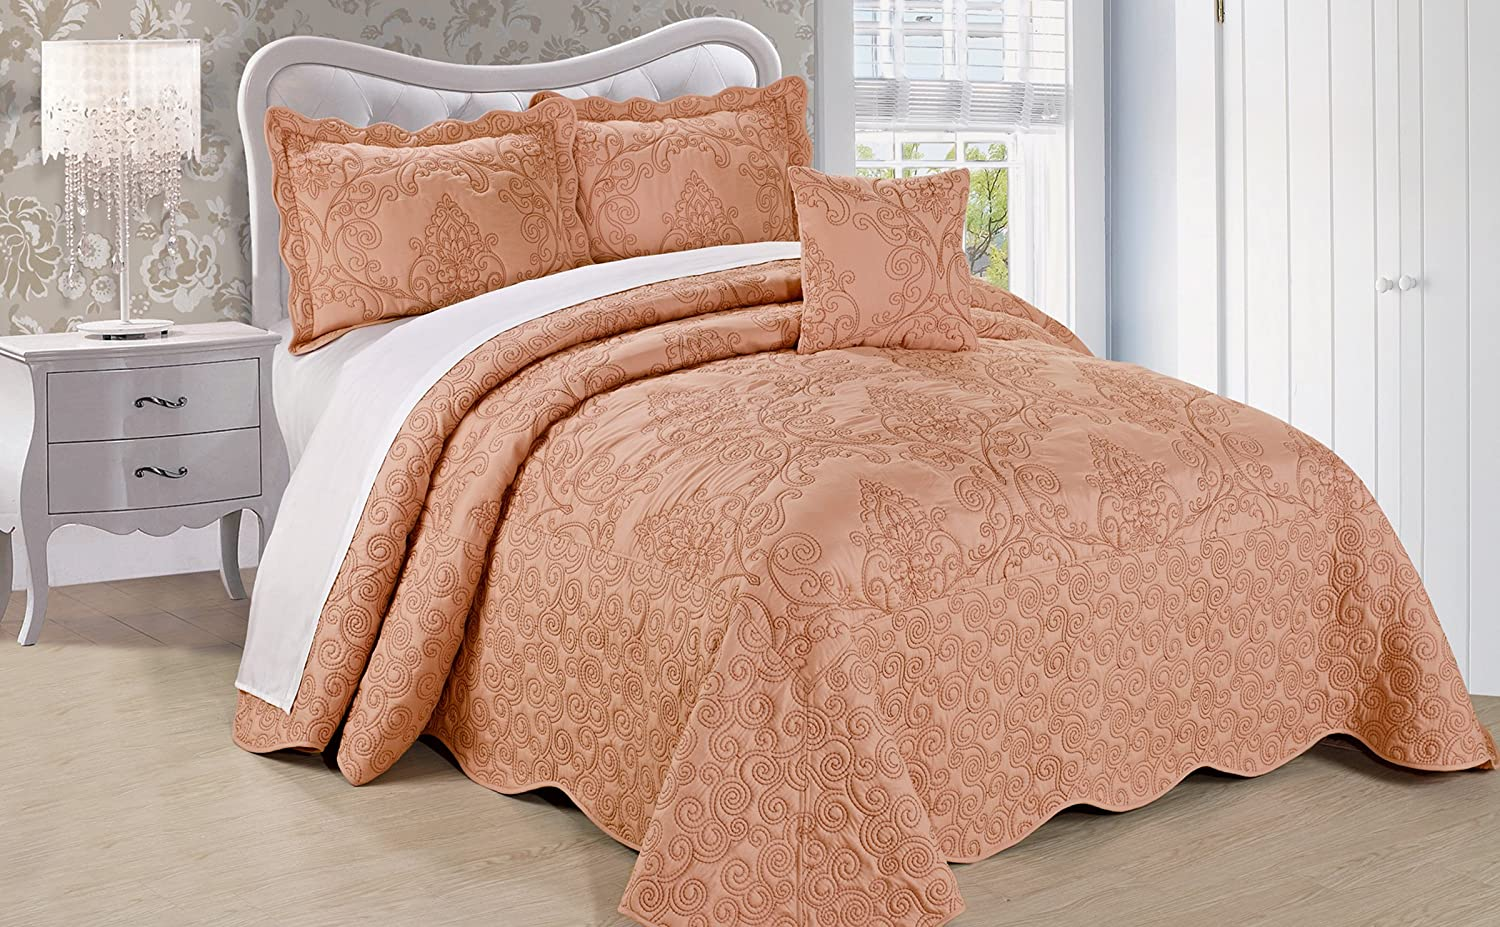 duvet colored image cheap home with comforter design dark rose canada of taupe ae bedskirt attached skirt mustard yellow sets duvets ruffle double ac king maroon and queen sheet size bedding cover white navy blue full lustwithalaugh